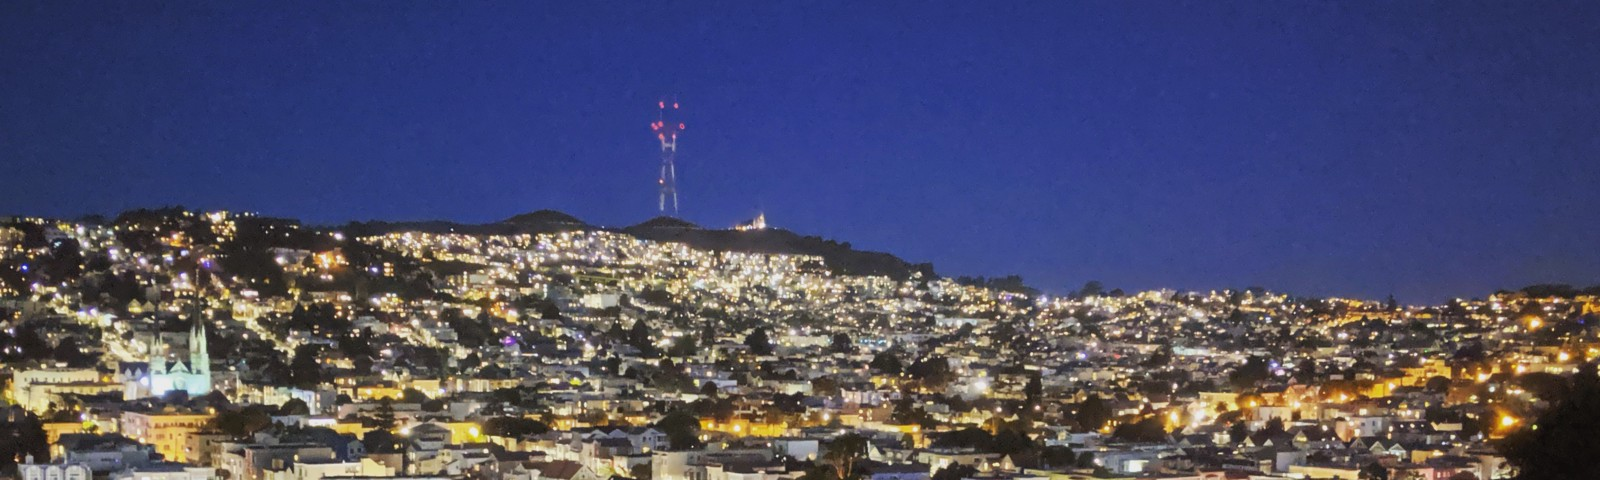 San Francisco from Bernal Heights. Fifth year since I moved here and I finally feel that I can call this city my home.